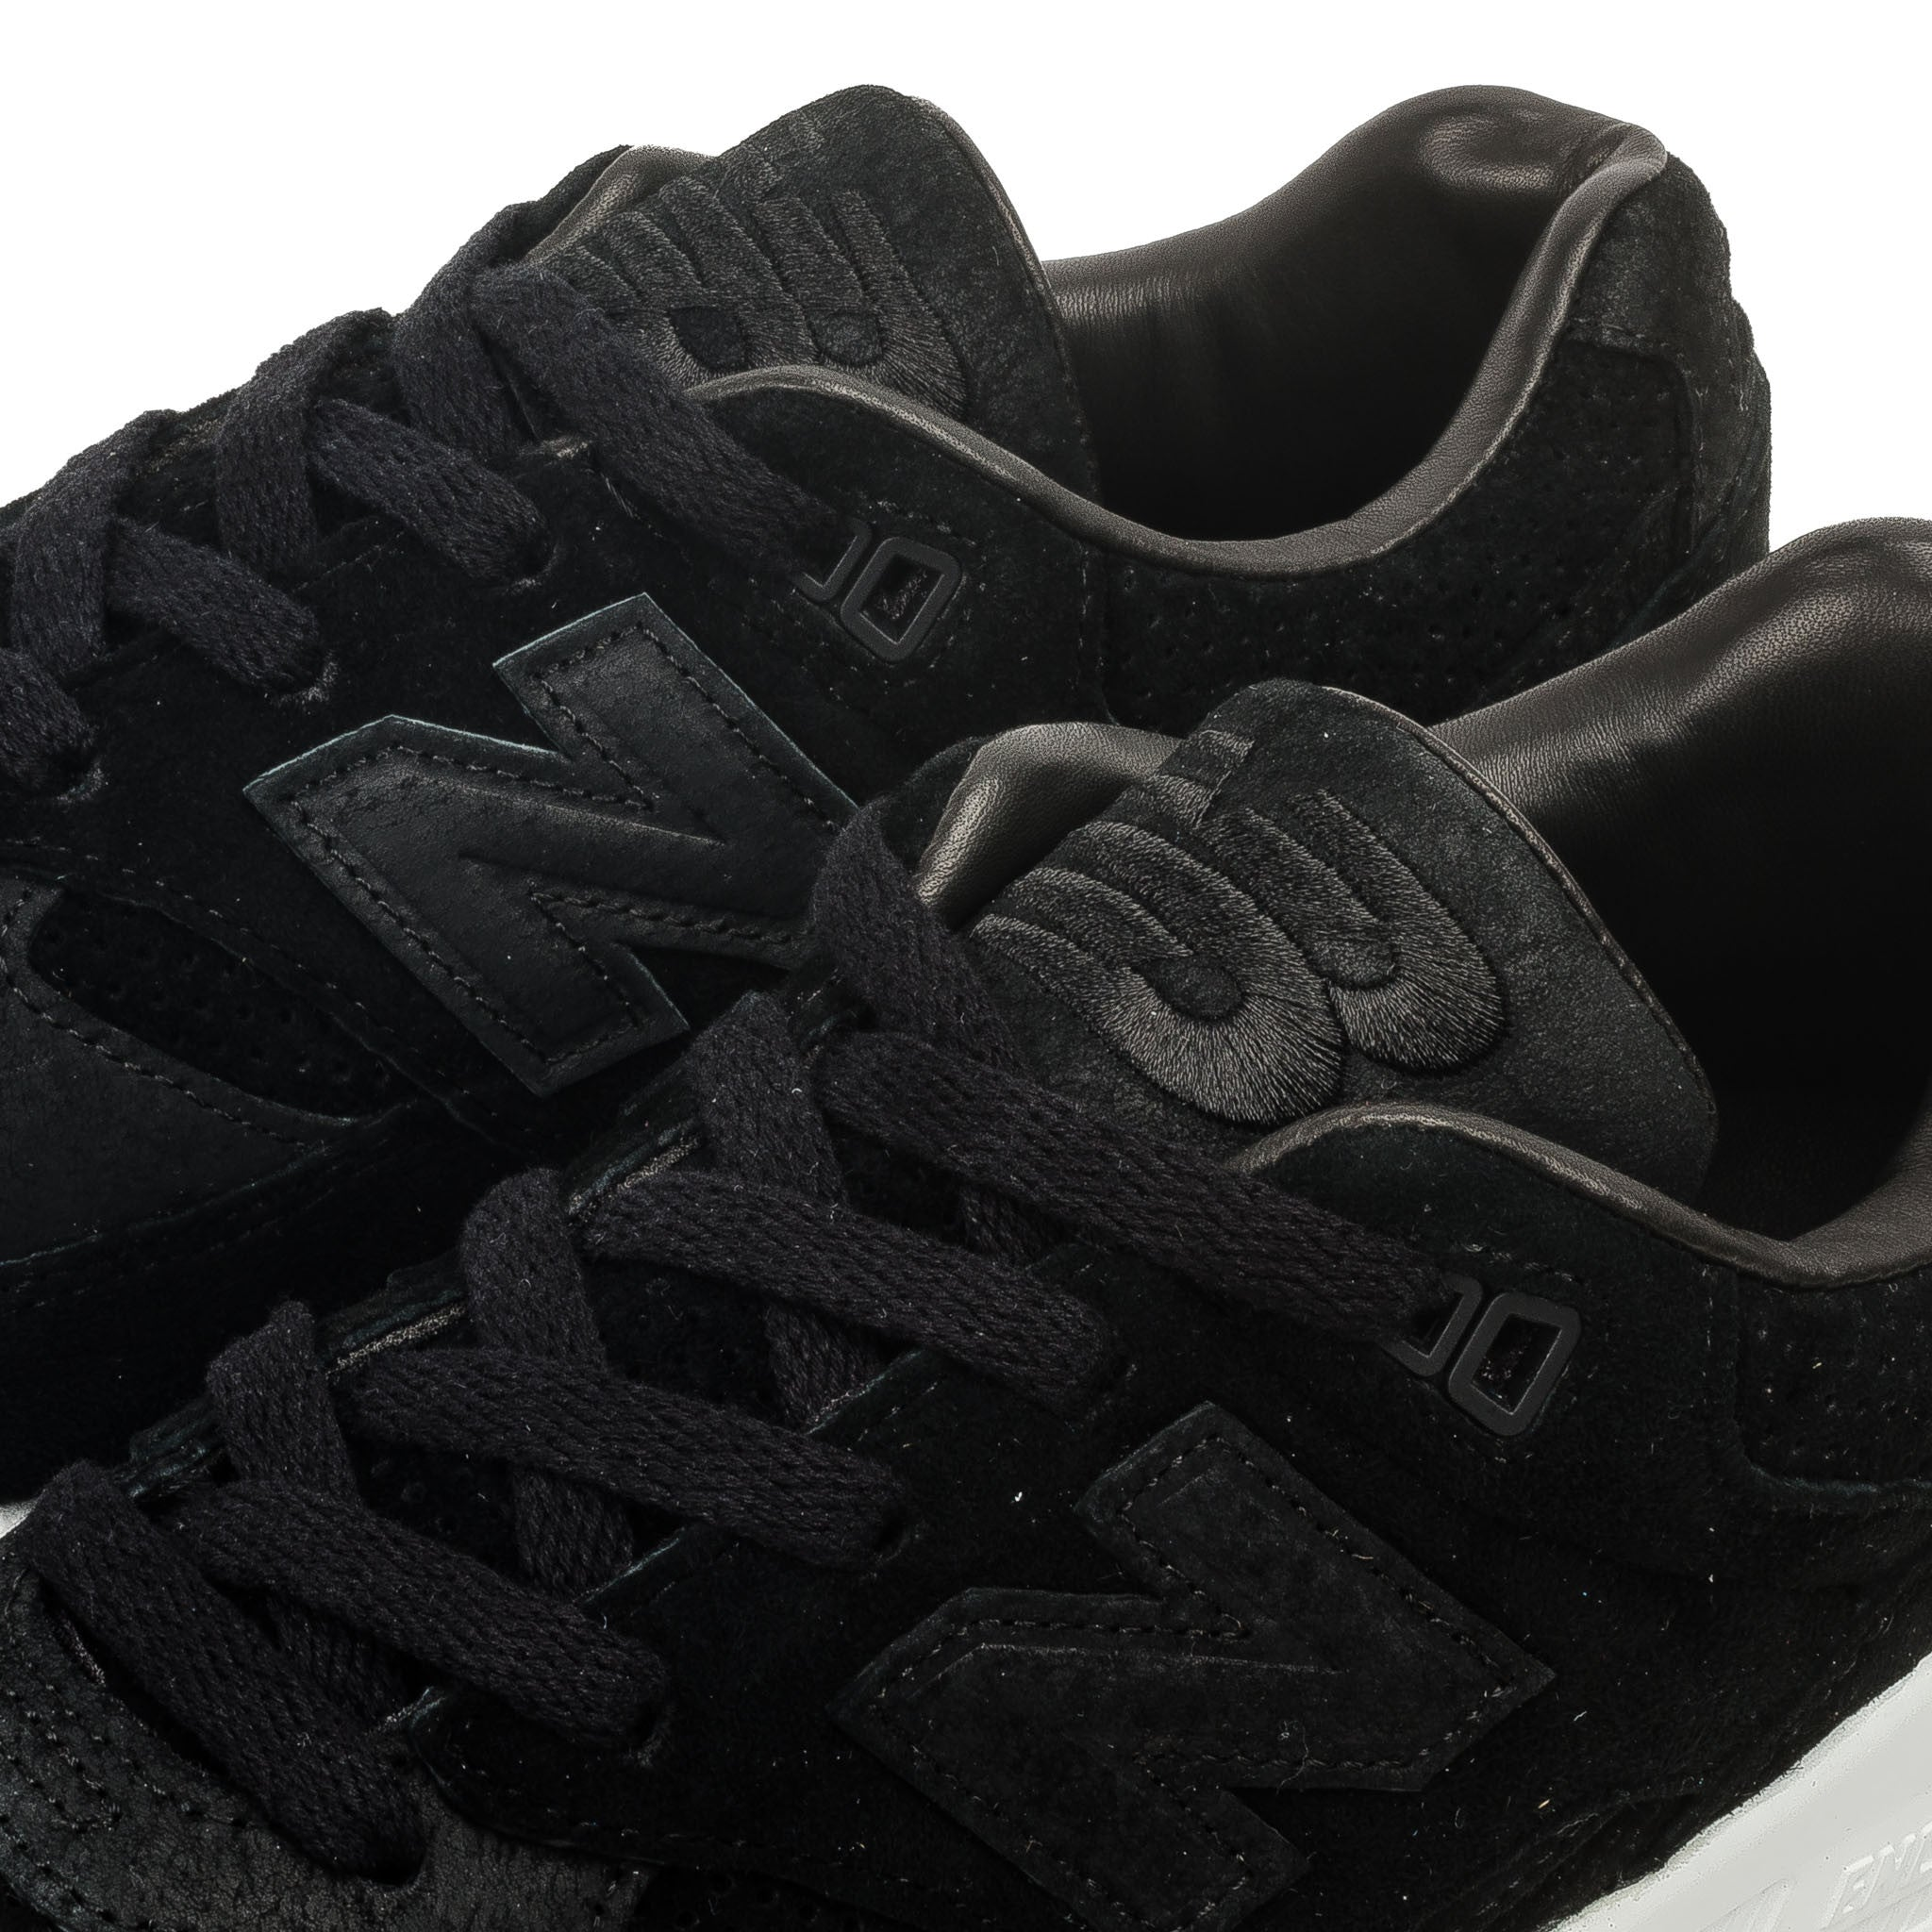 Reigning Champ x New Balance M530RCB